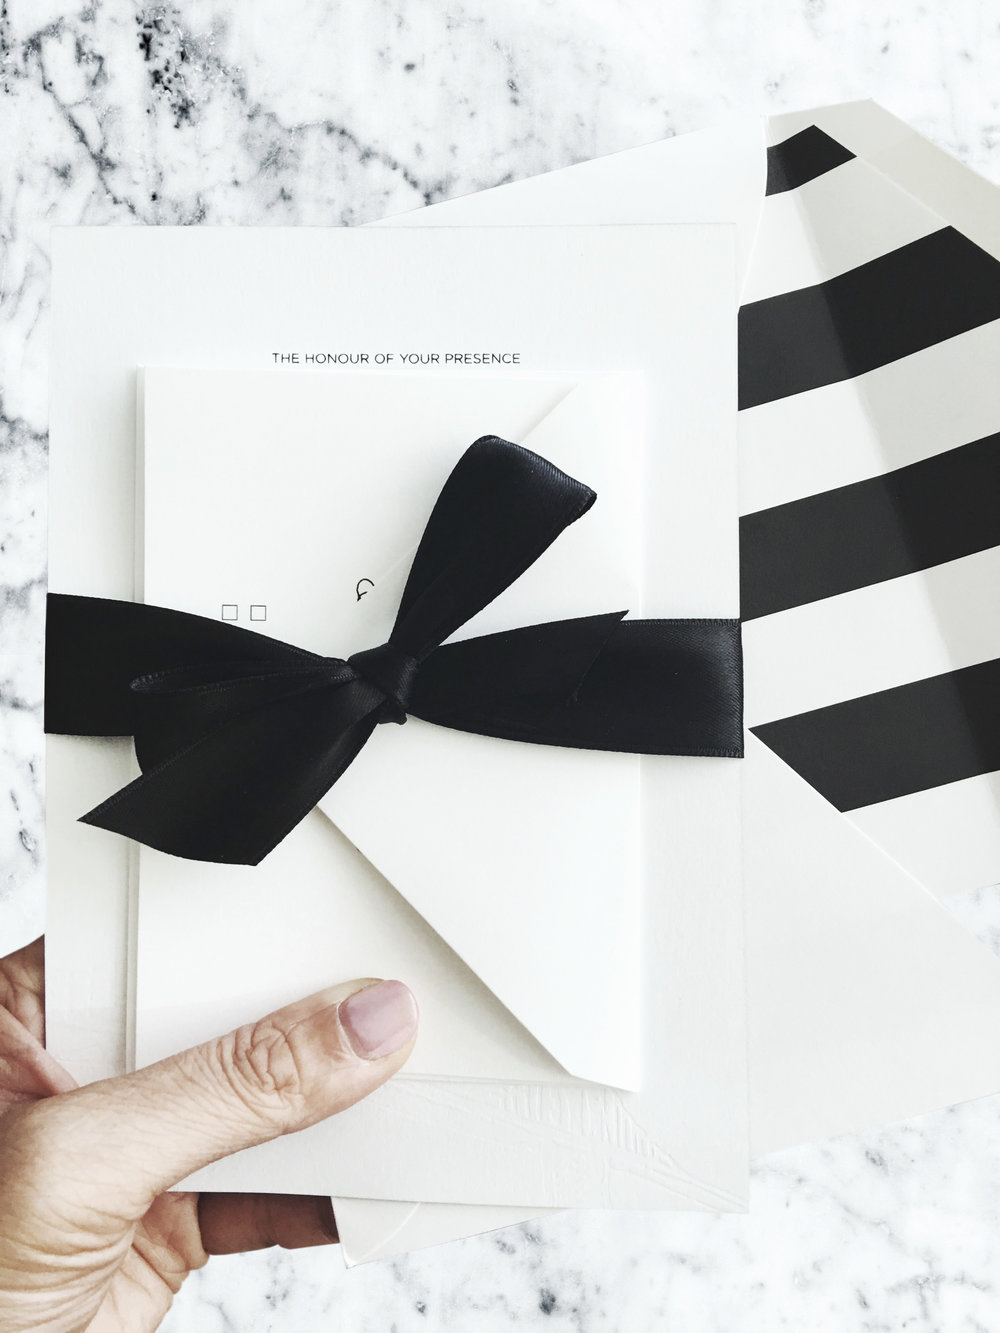 Black and white wedding invitations for a sophisticated New York City wedding // by Chavelli www.chavelli.com